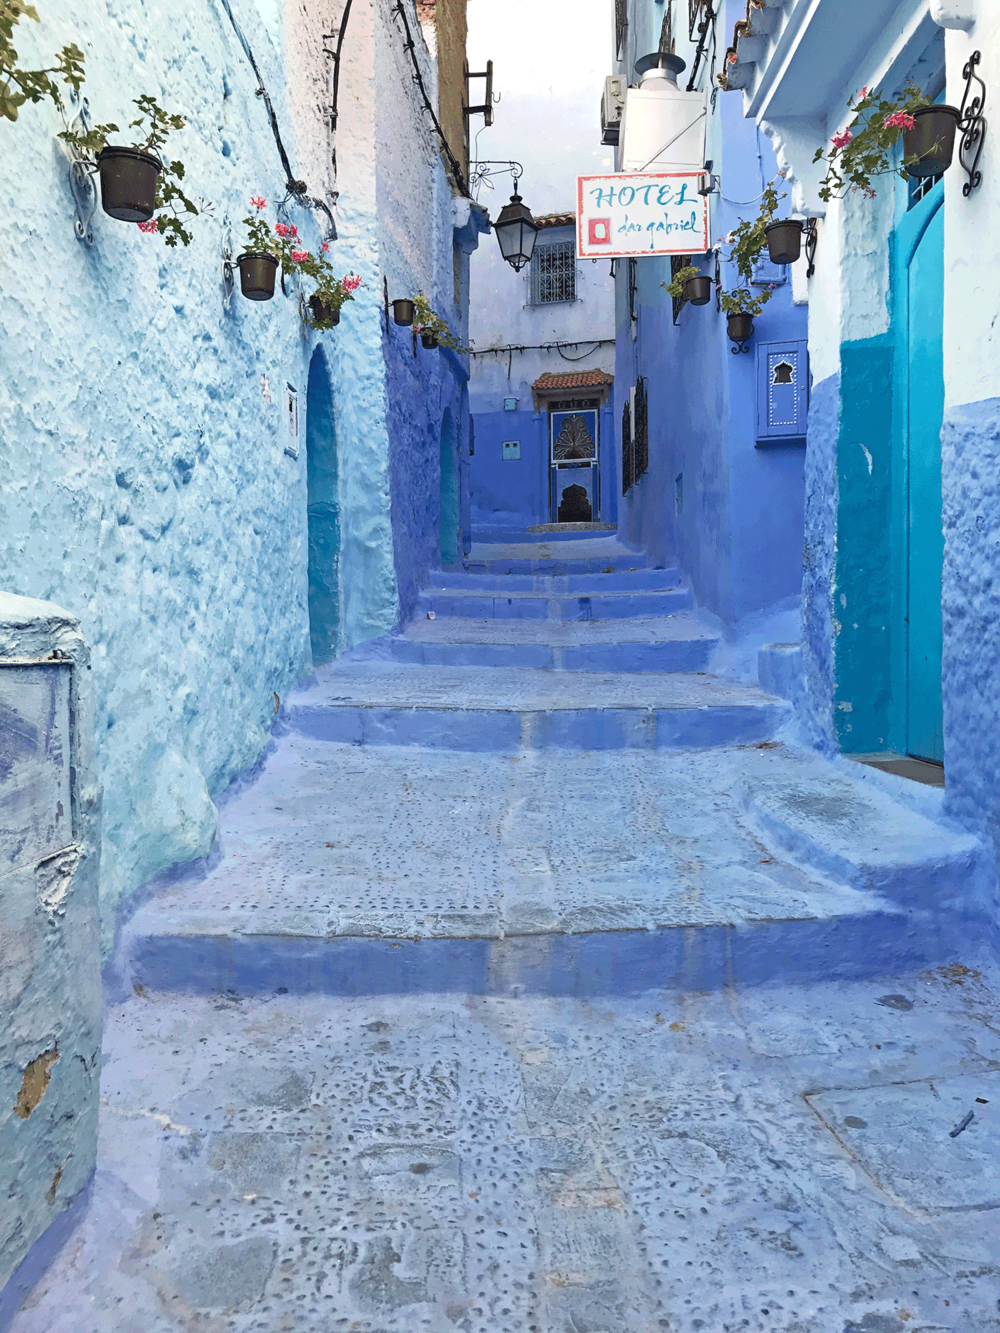 Chefchaouen-Morocco-image-blue-stairs-walkway-hotel.png